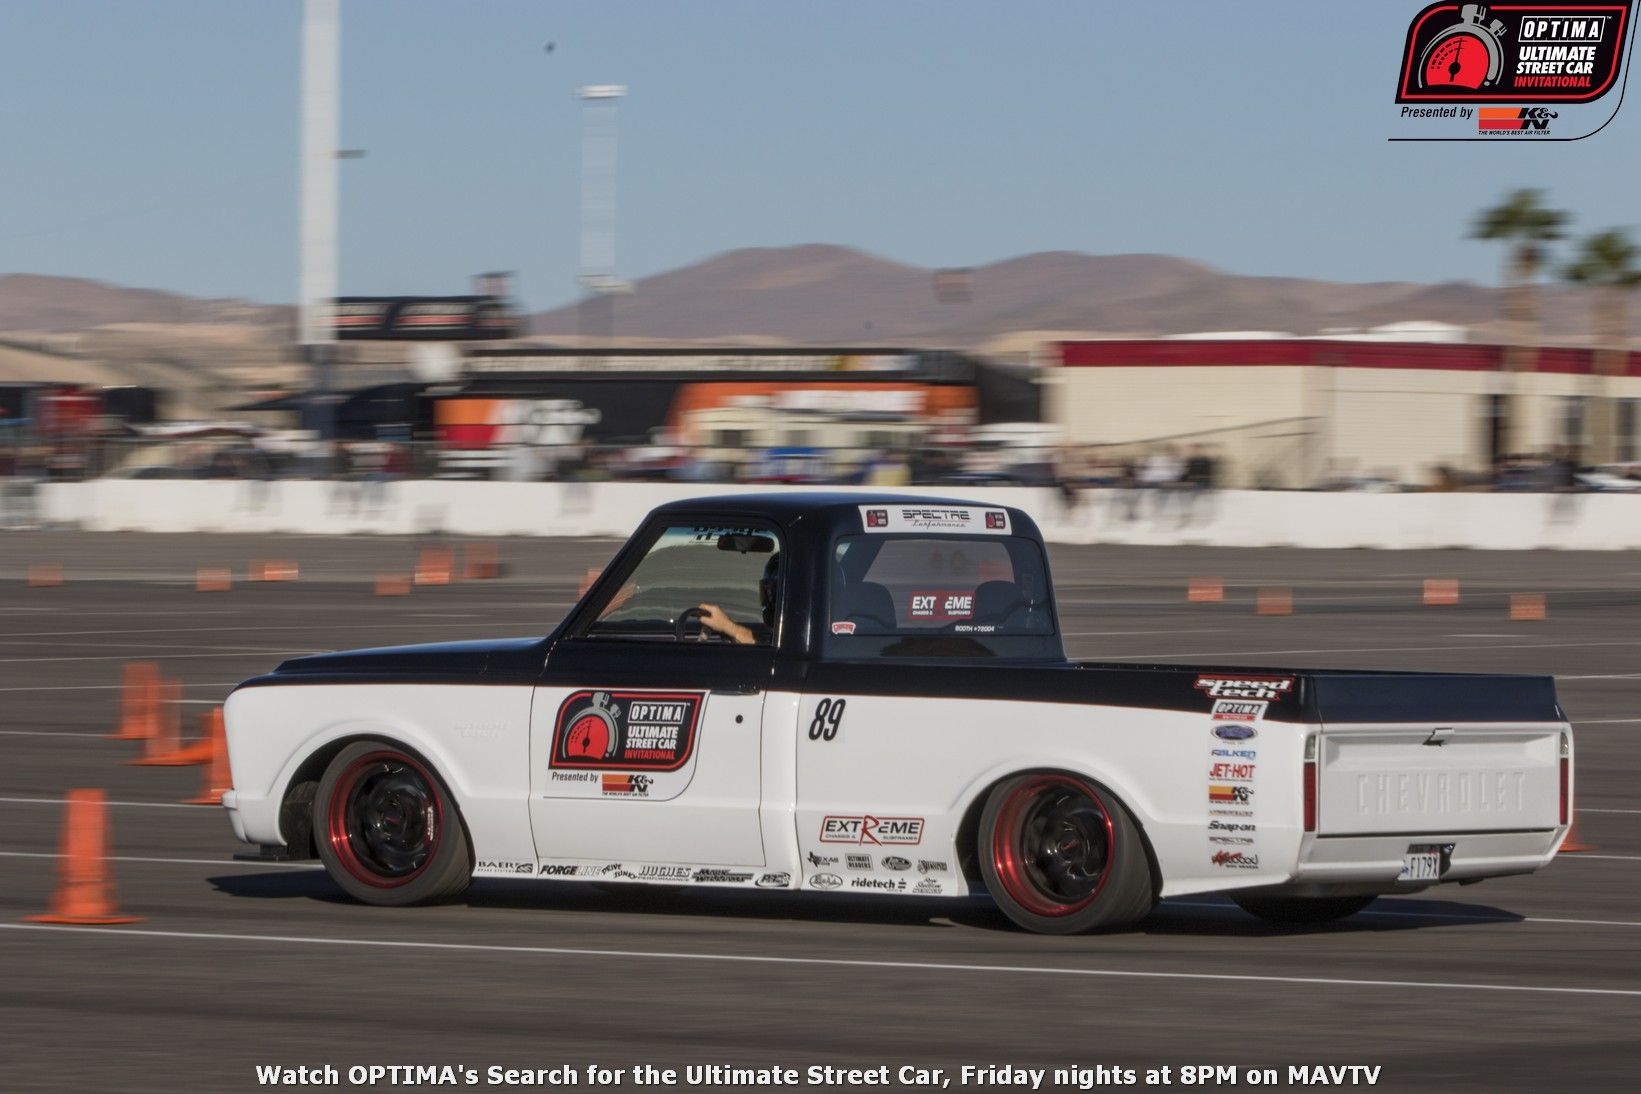 Jay Weir Competed In The 2015 Ousci In His 1968 Chevrolet C10 Learn More At Www Optimainvitational Com Chevy Trucks Chevy C10 Chevy